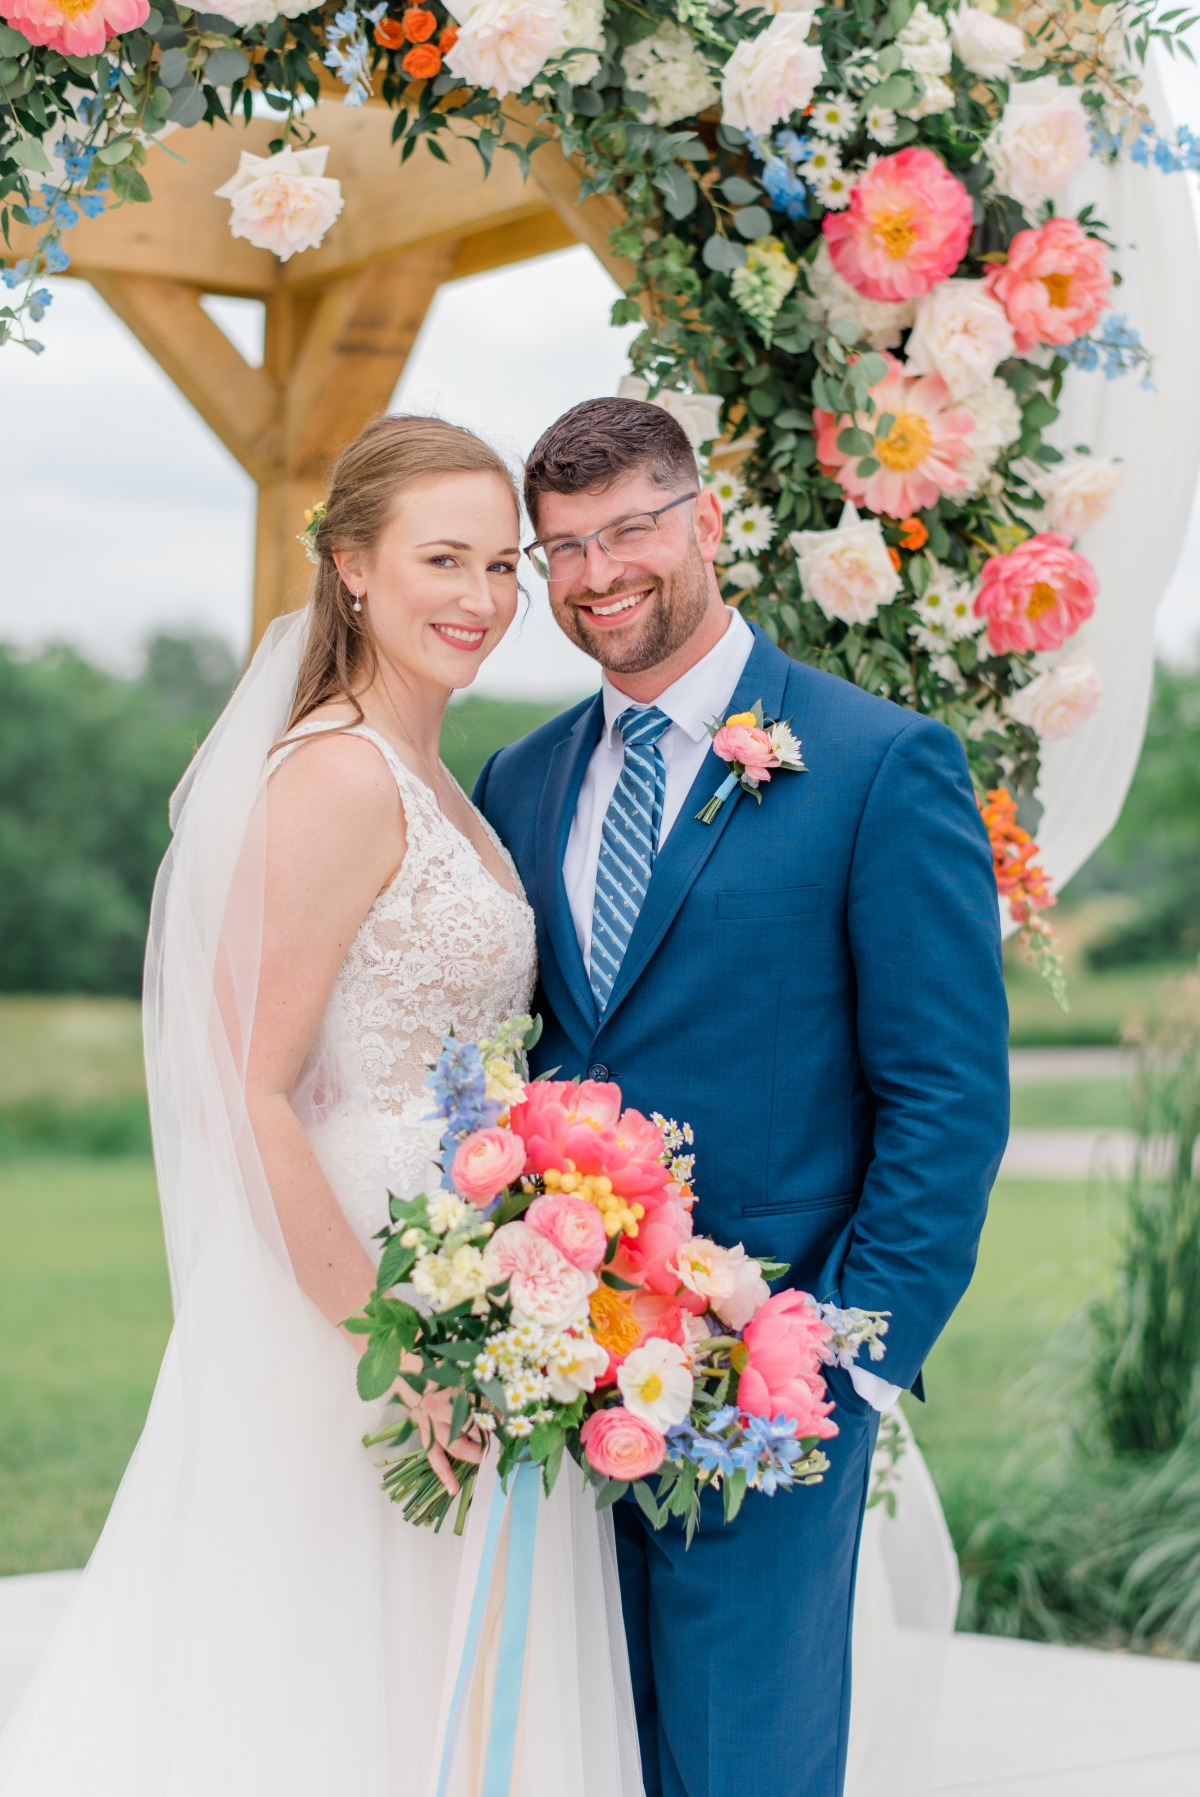 A Garden Wedding At The Wilds In Bloomington, IN